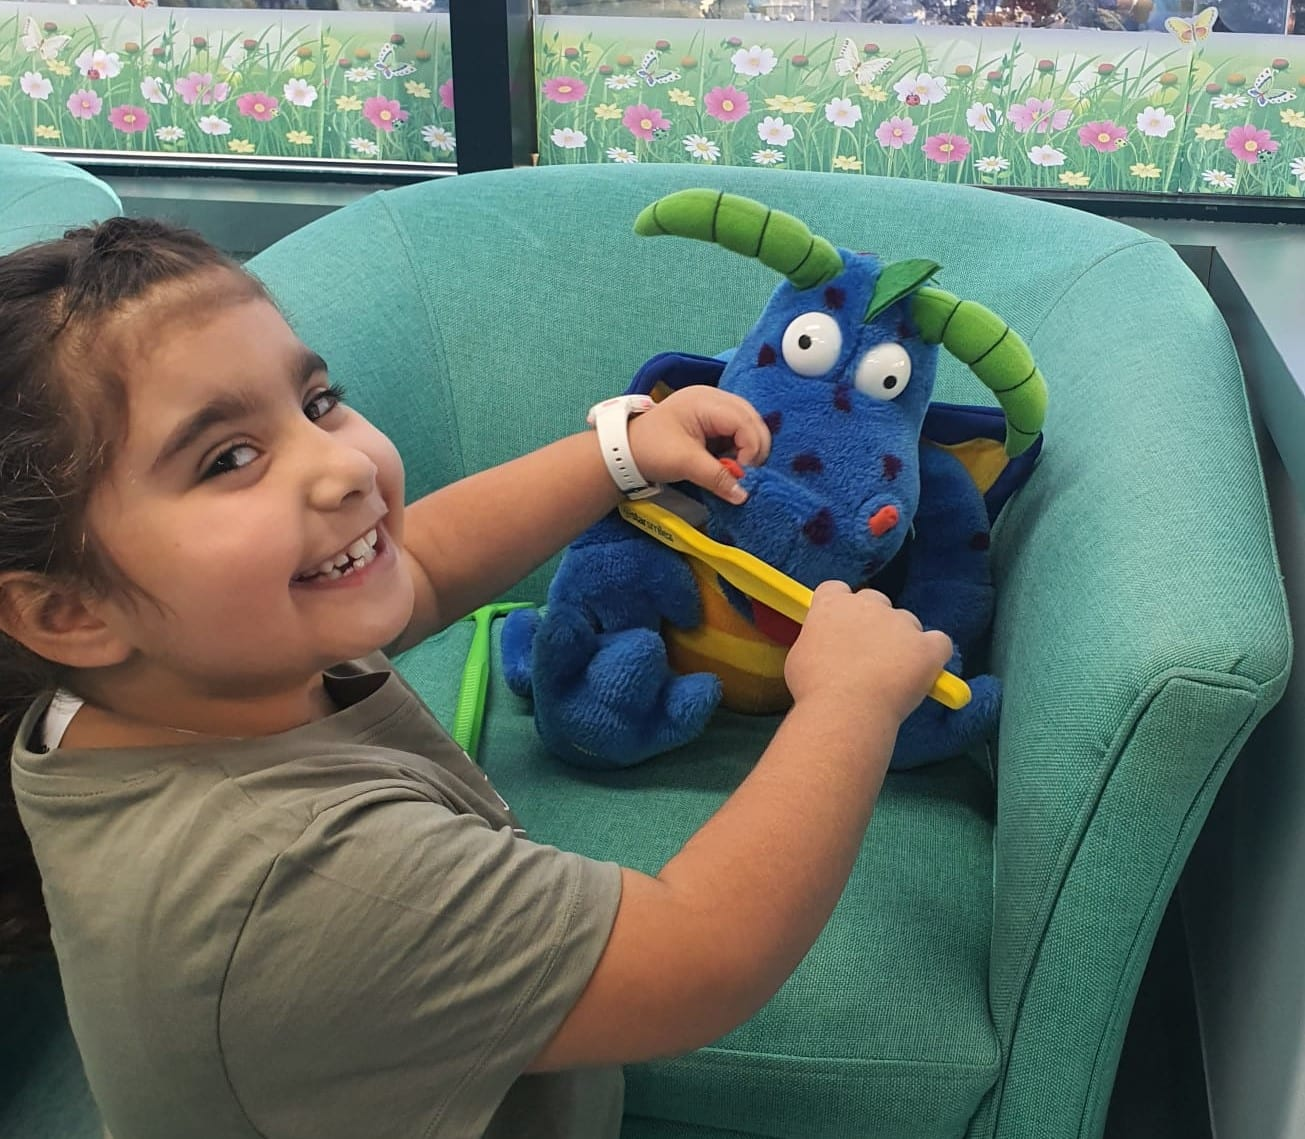 Campbelltown Family Dental Care 1st visit OHI toy